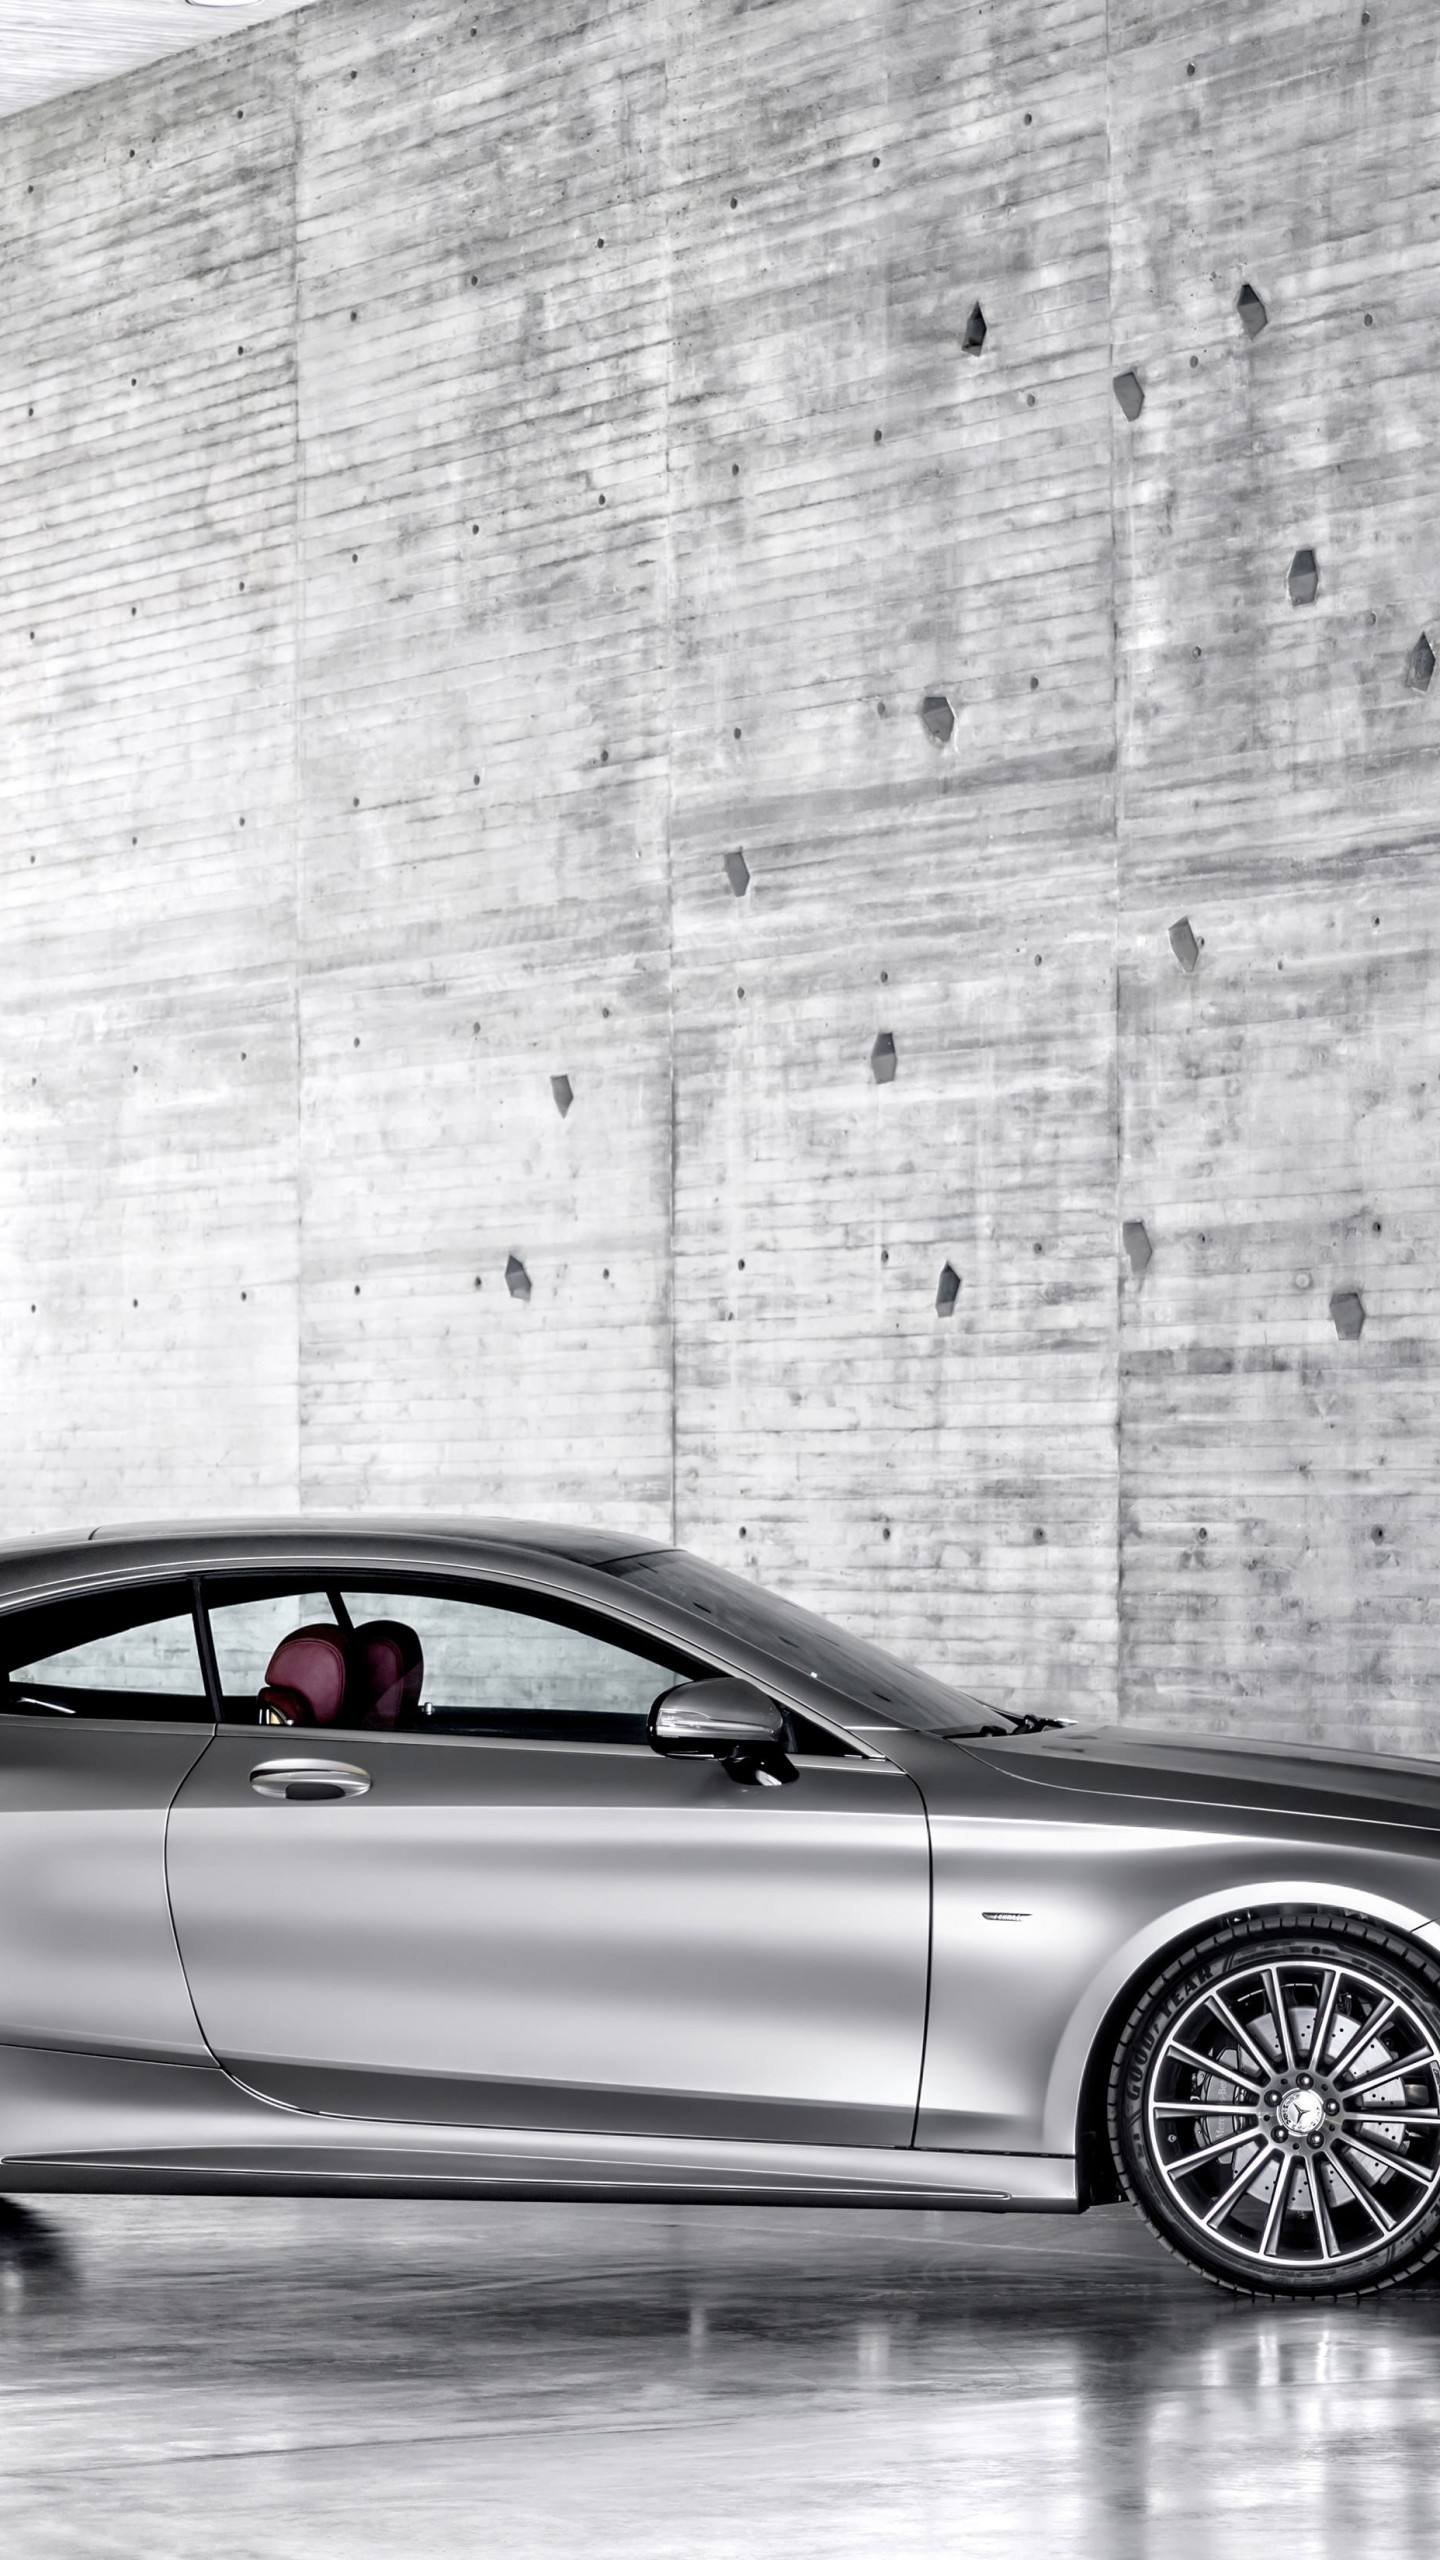 2015 Mercedes-Benz S-Class Coupe Wallpaper for LG G3